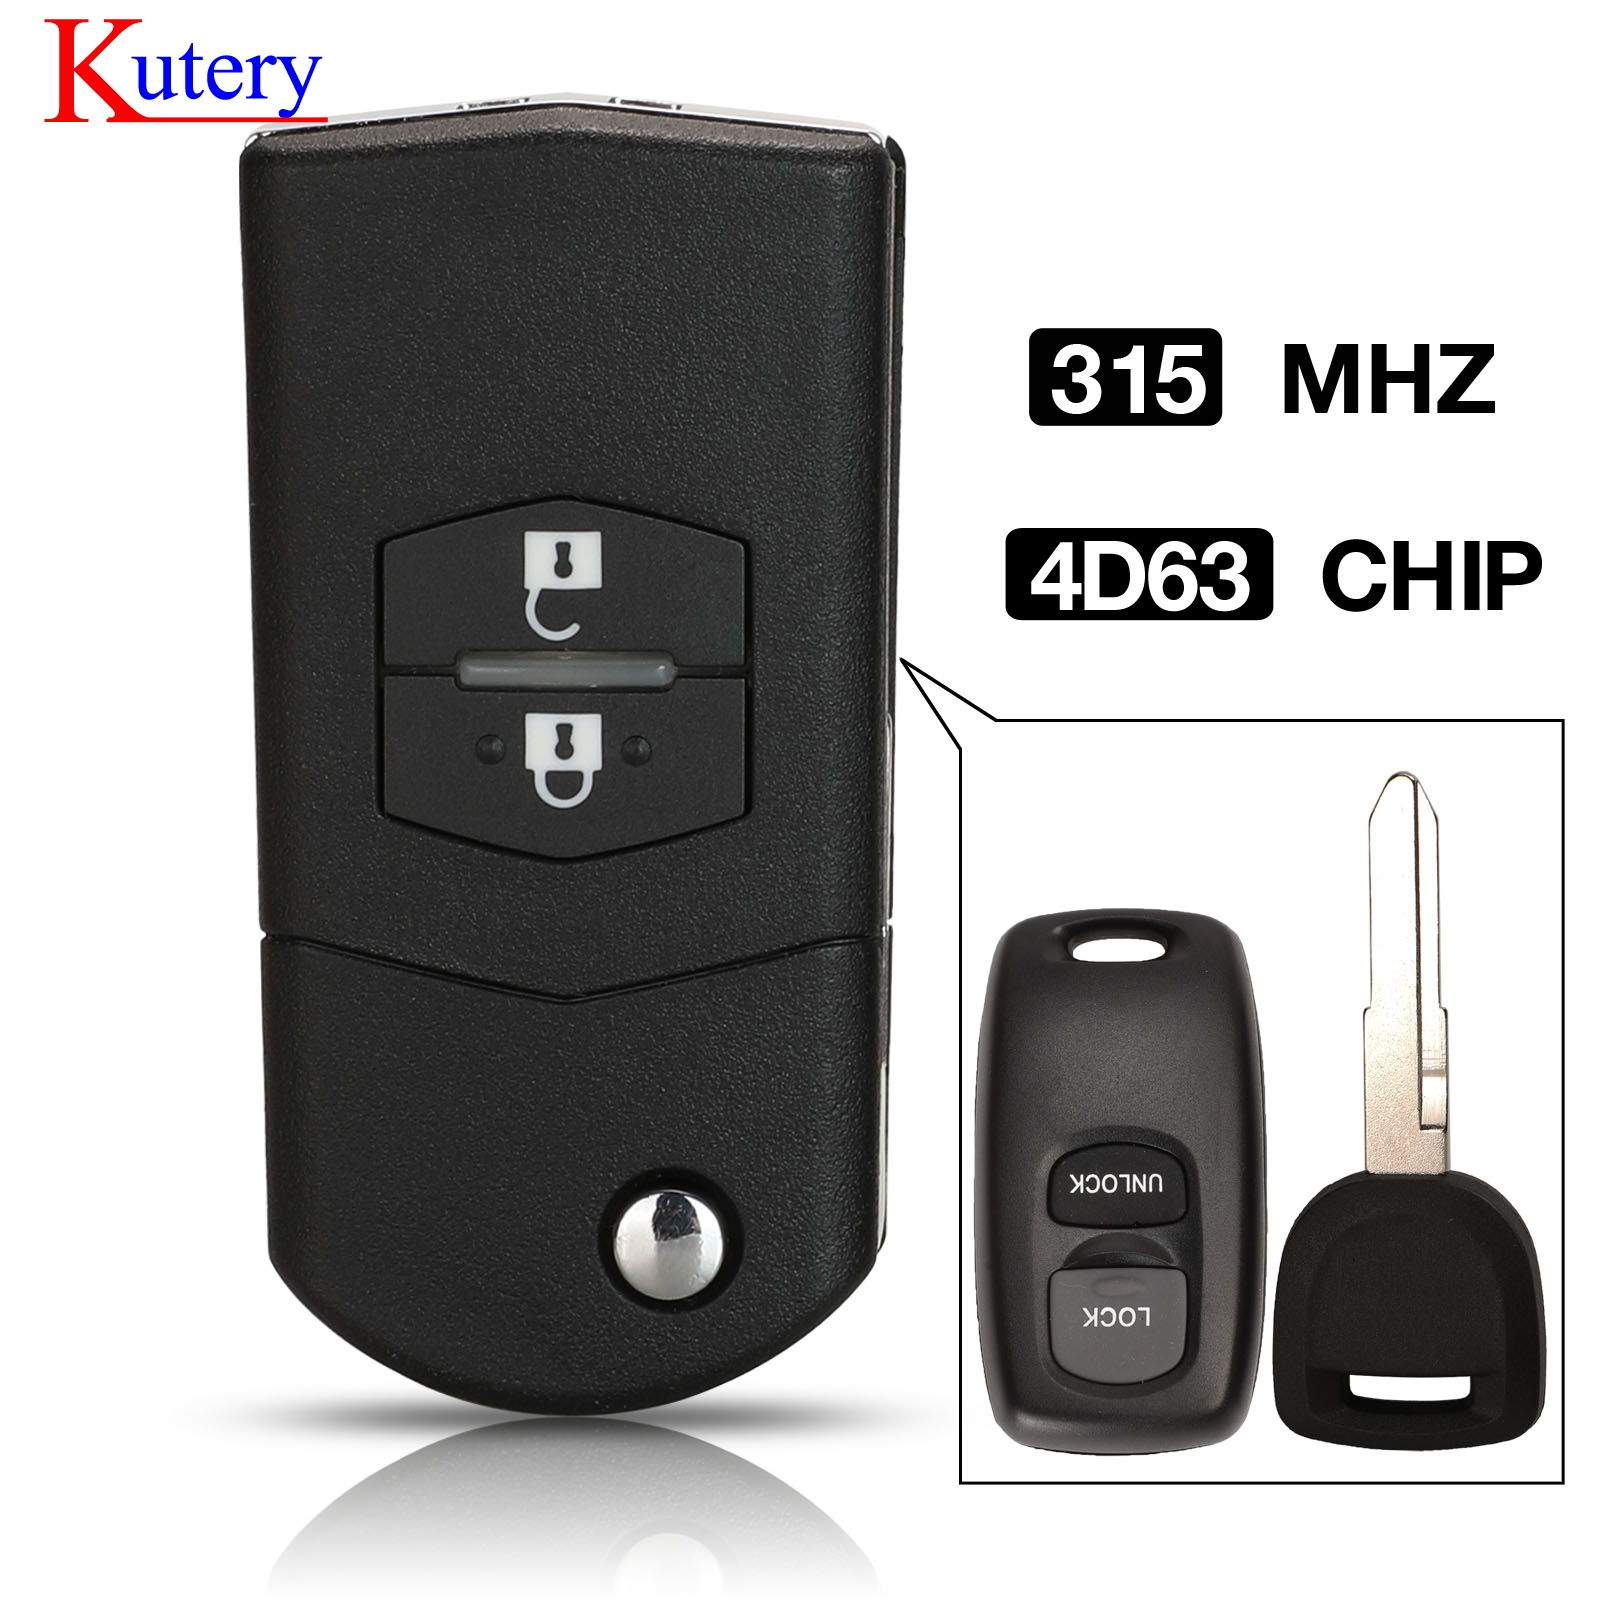 kutery upgrade Flip Remote Car Key 2 Buttons 315MHz 4D63 Chip Fob for Mazda 3 6 Visteon Model No. 41528 or 41797 image